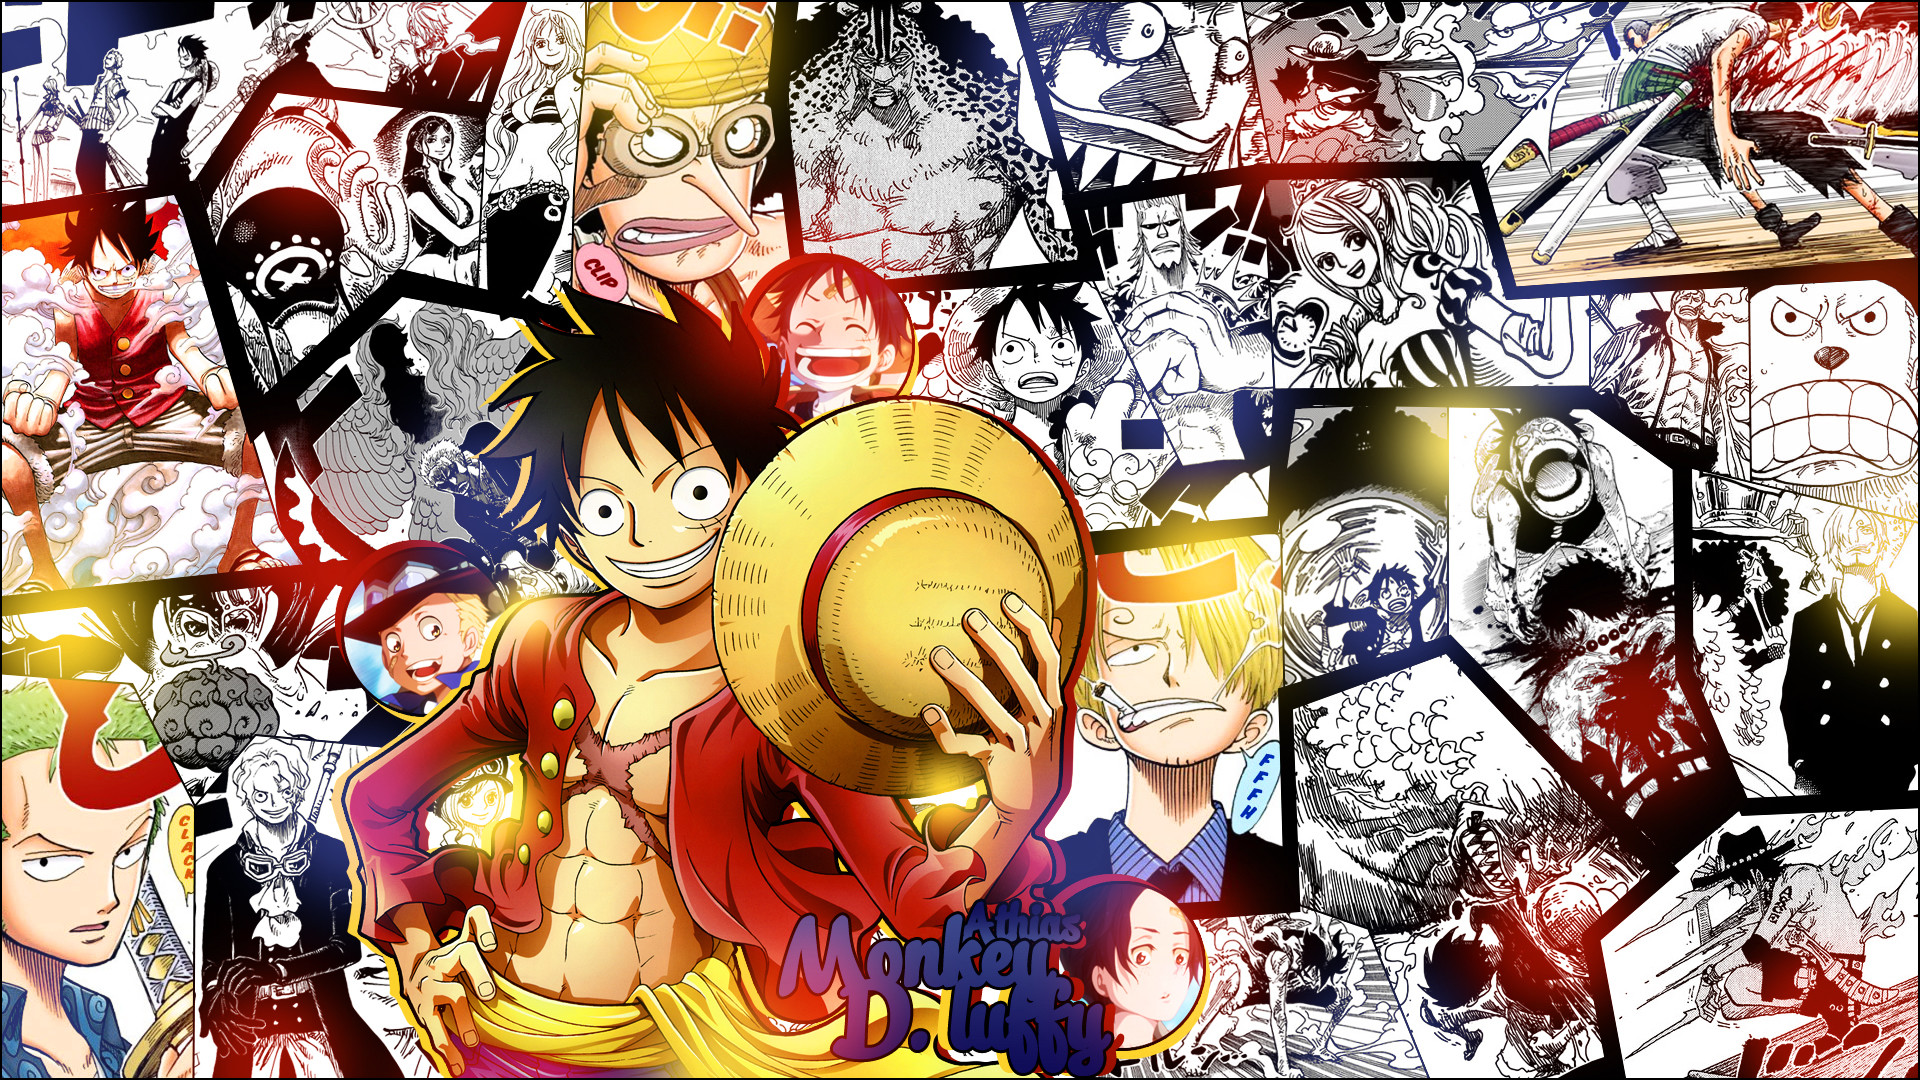 Res: 1920x1080, WALLPAPER - One Piece by Athias95 WALLPAPER - One Piece by Athias95